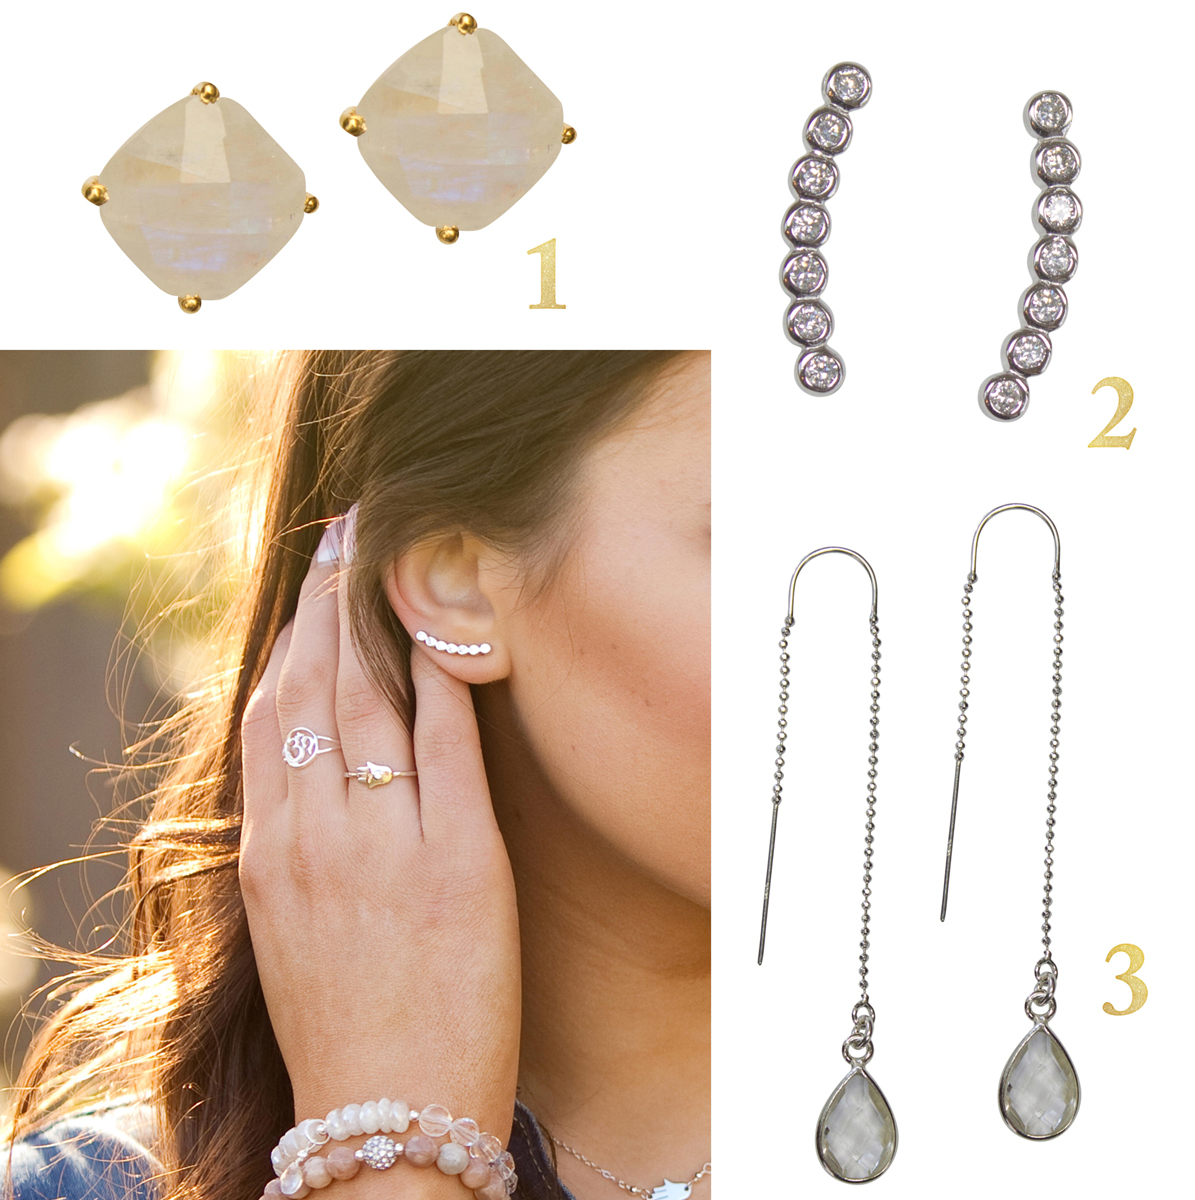 3 Must Have Earring Styles For Fall 2015 - Brooklyn Designs